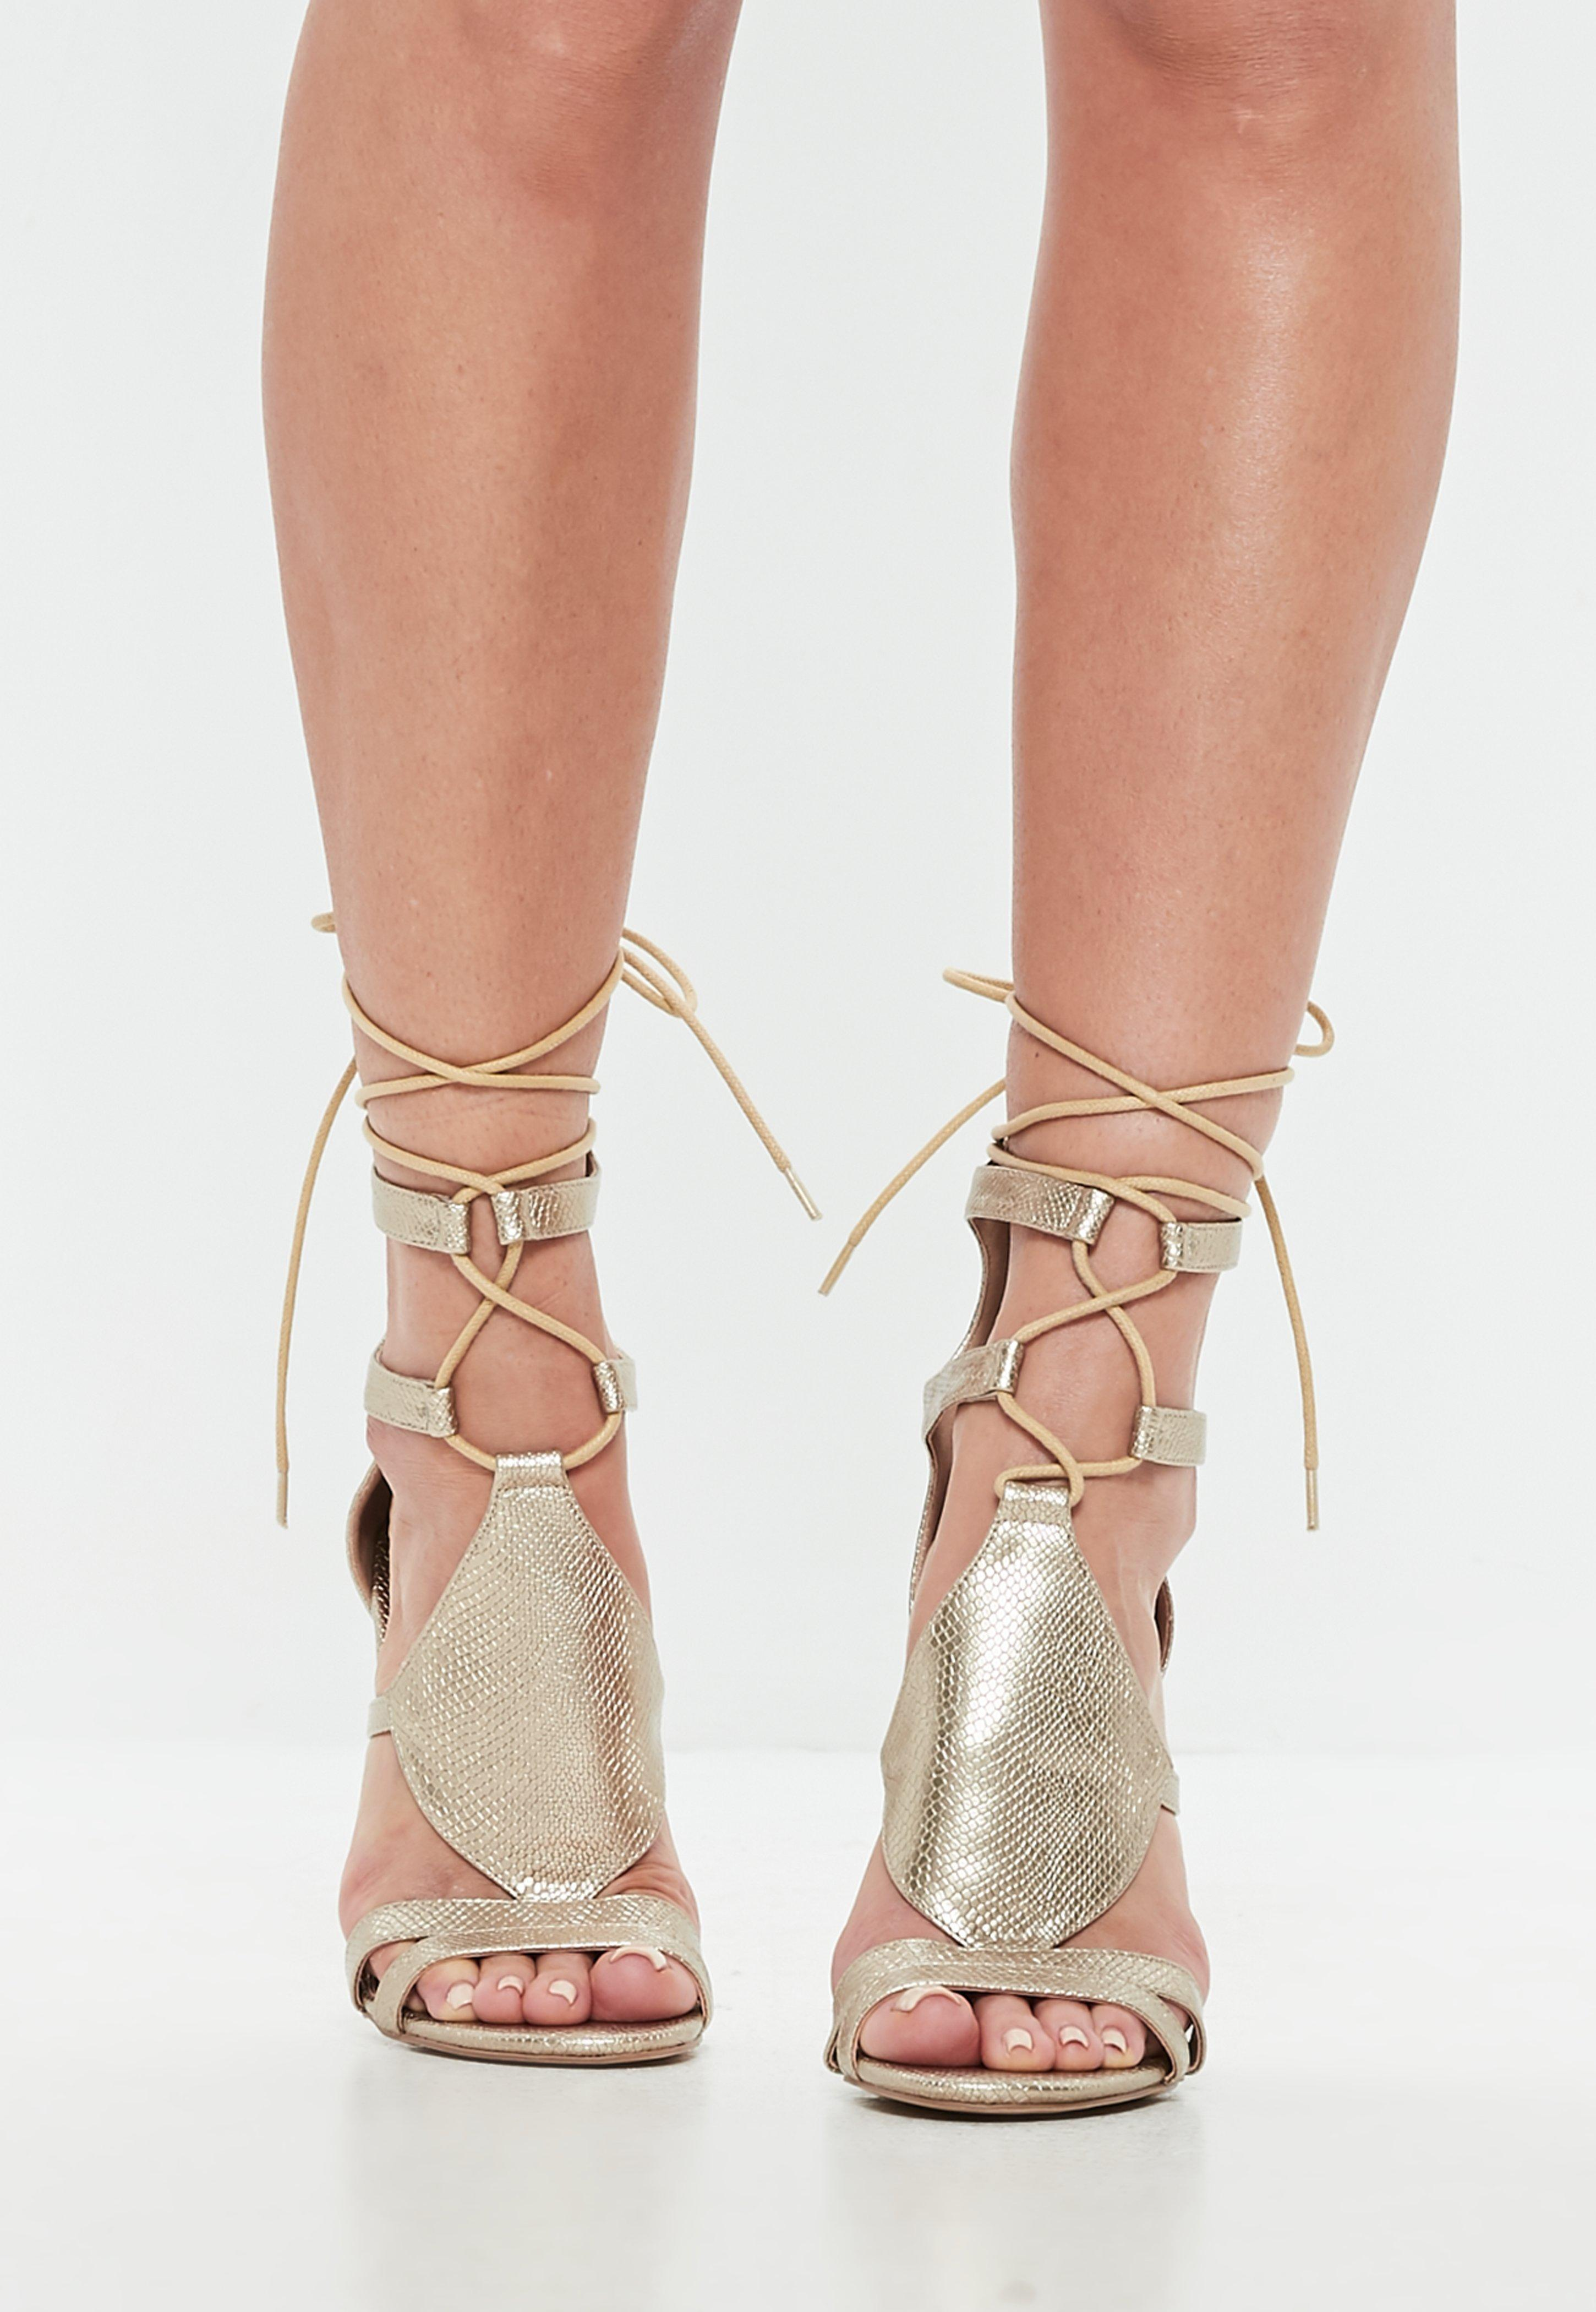 af38f6d356d2 Missguided Gold Ankle Tie Gladiator Sandals in Metallic - Lyst